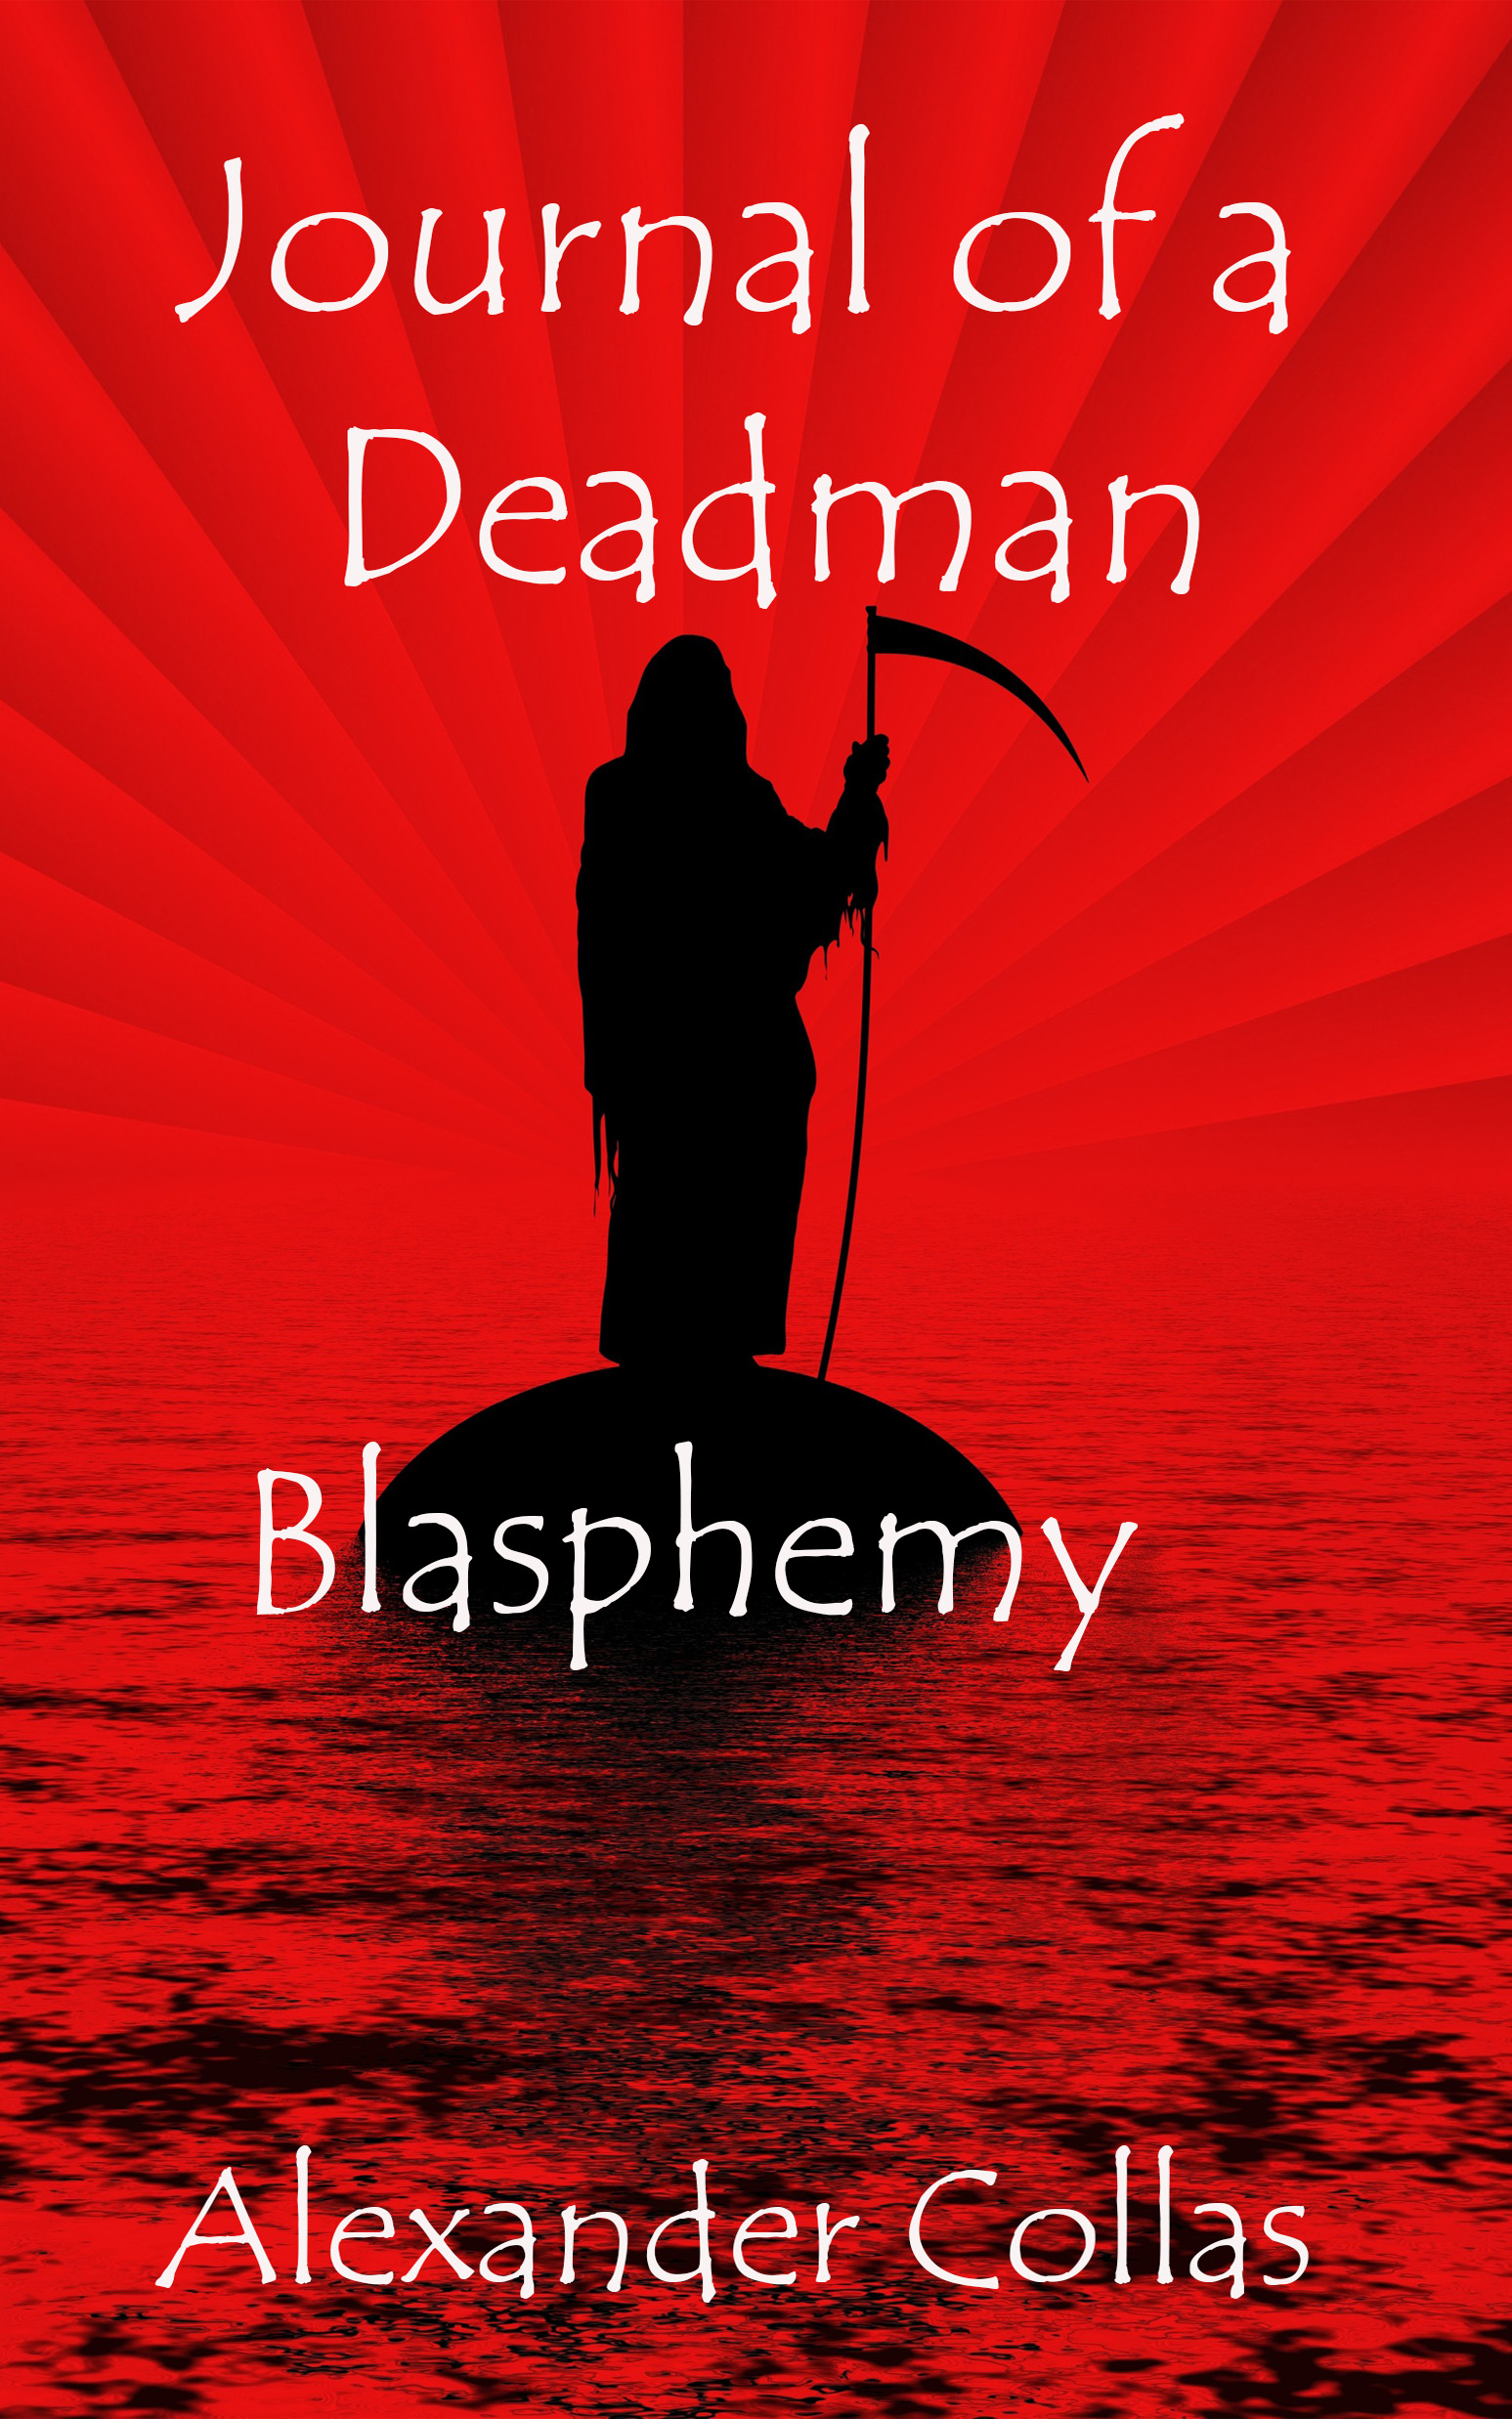 Journal of a Deadman 5 - Blasphemy